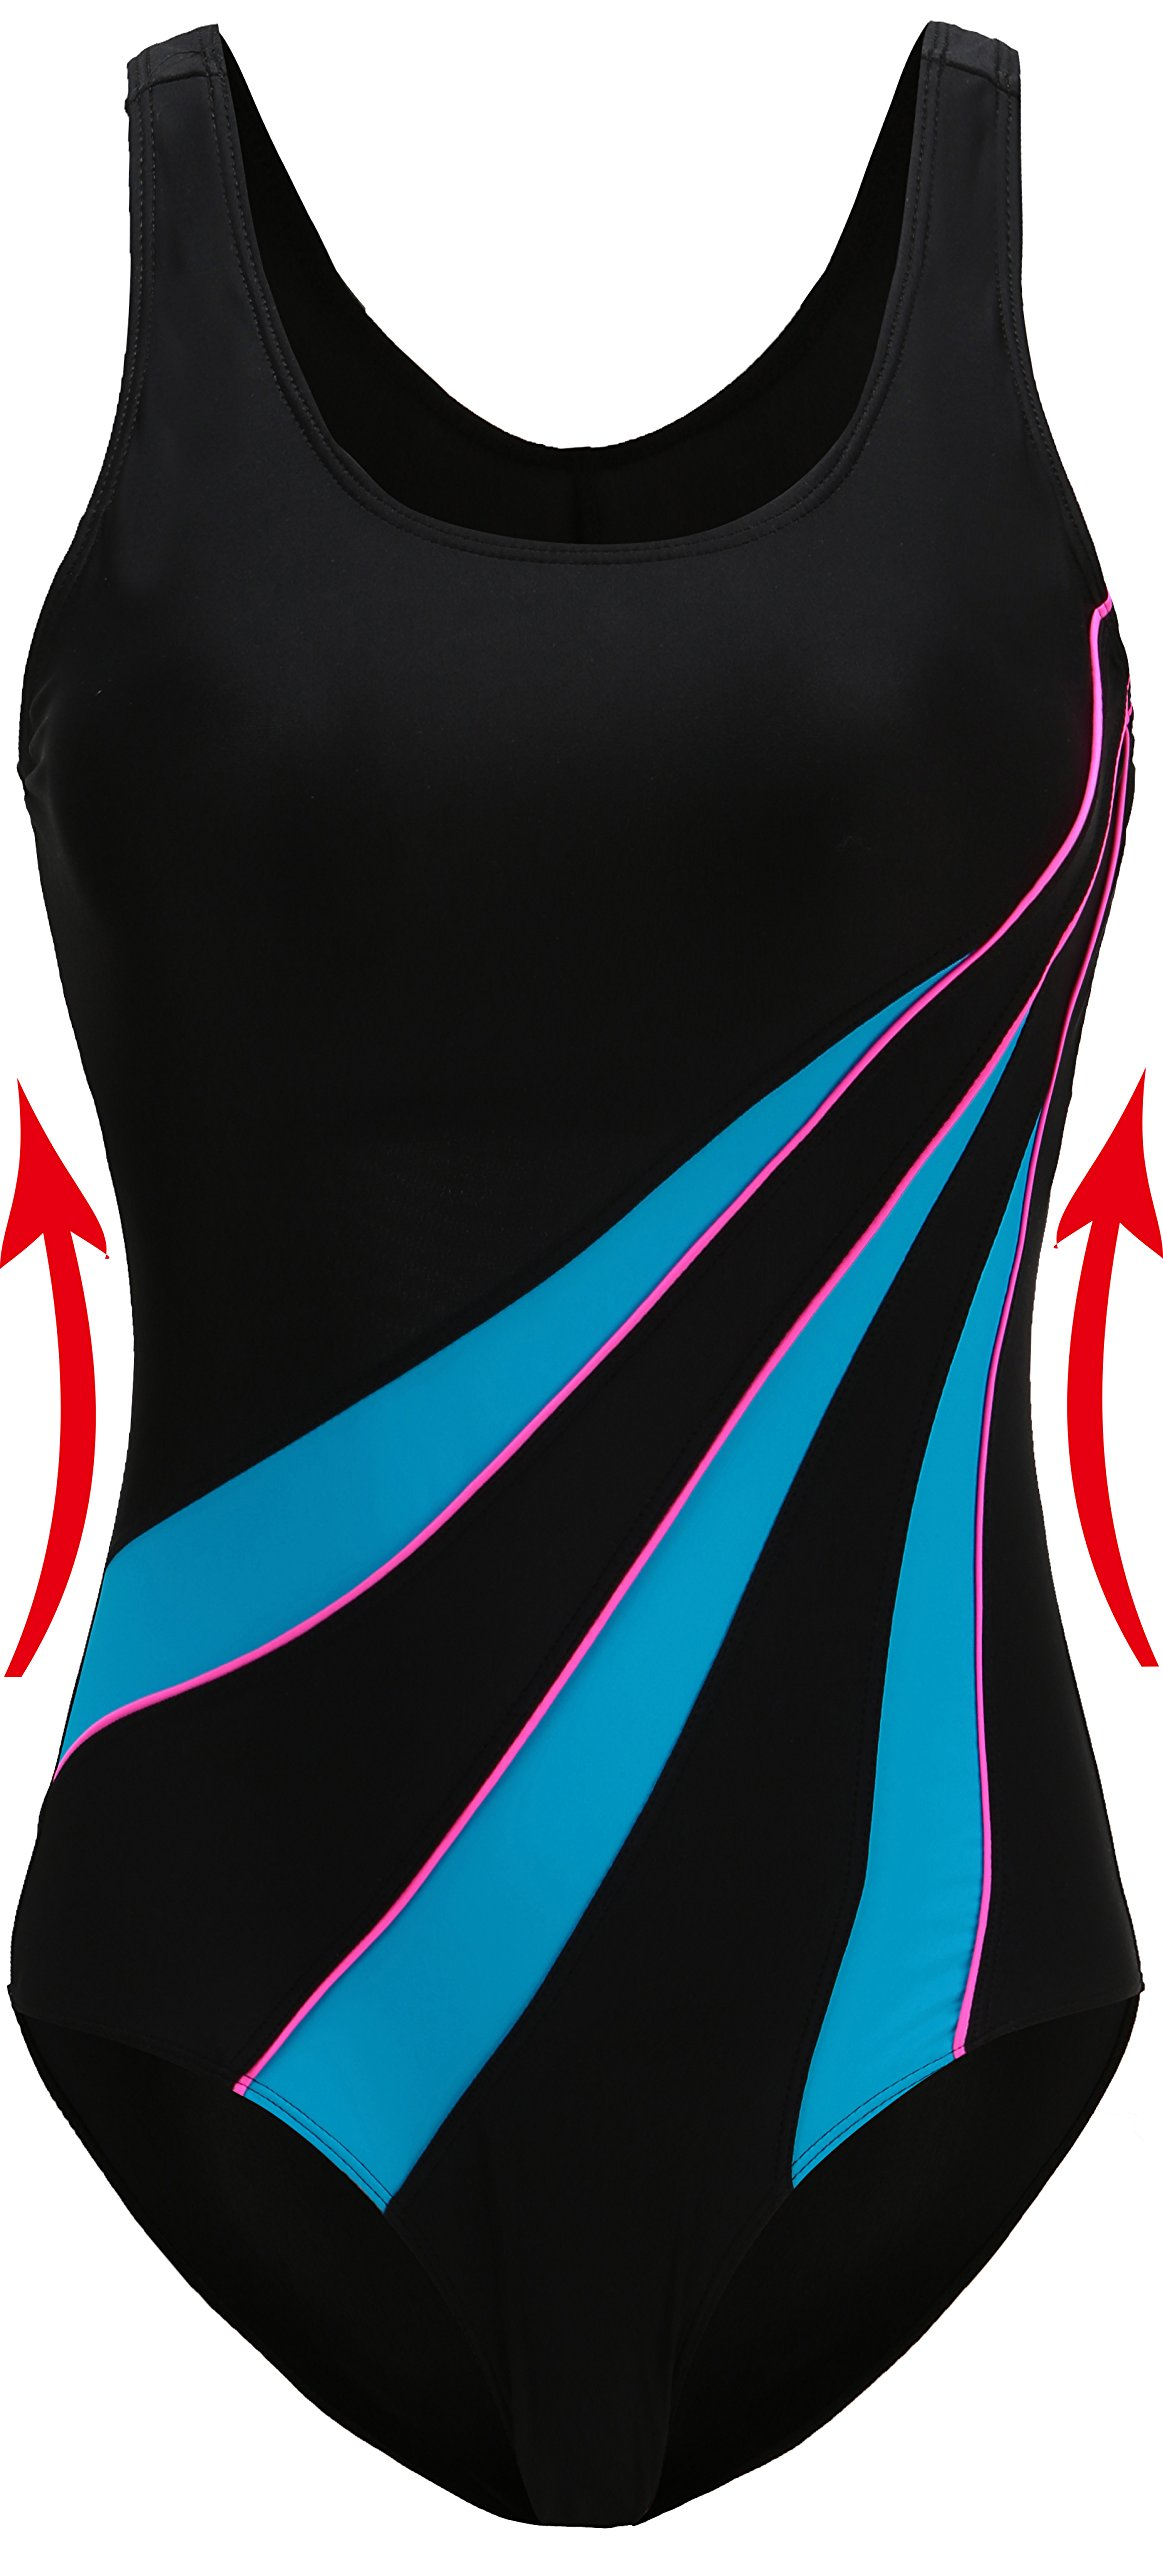 EBMORE Womens One Piece Swimsuit Bathing Suit Chlorine Resistant for Athletic Sport Training Exercise (US (6-8), Black & Blue)